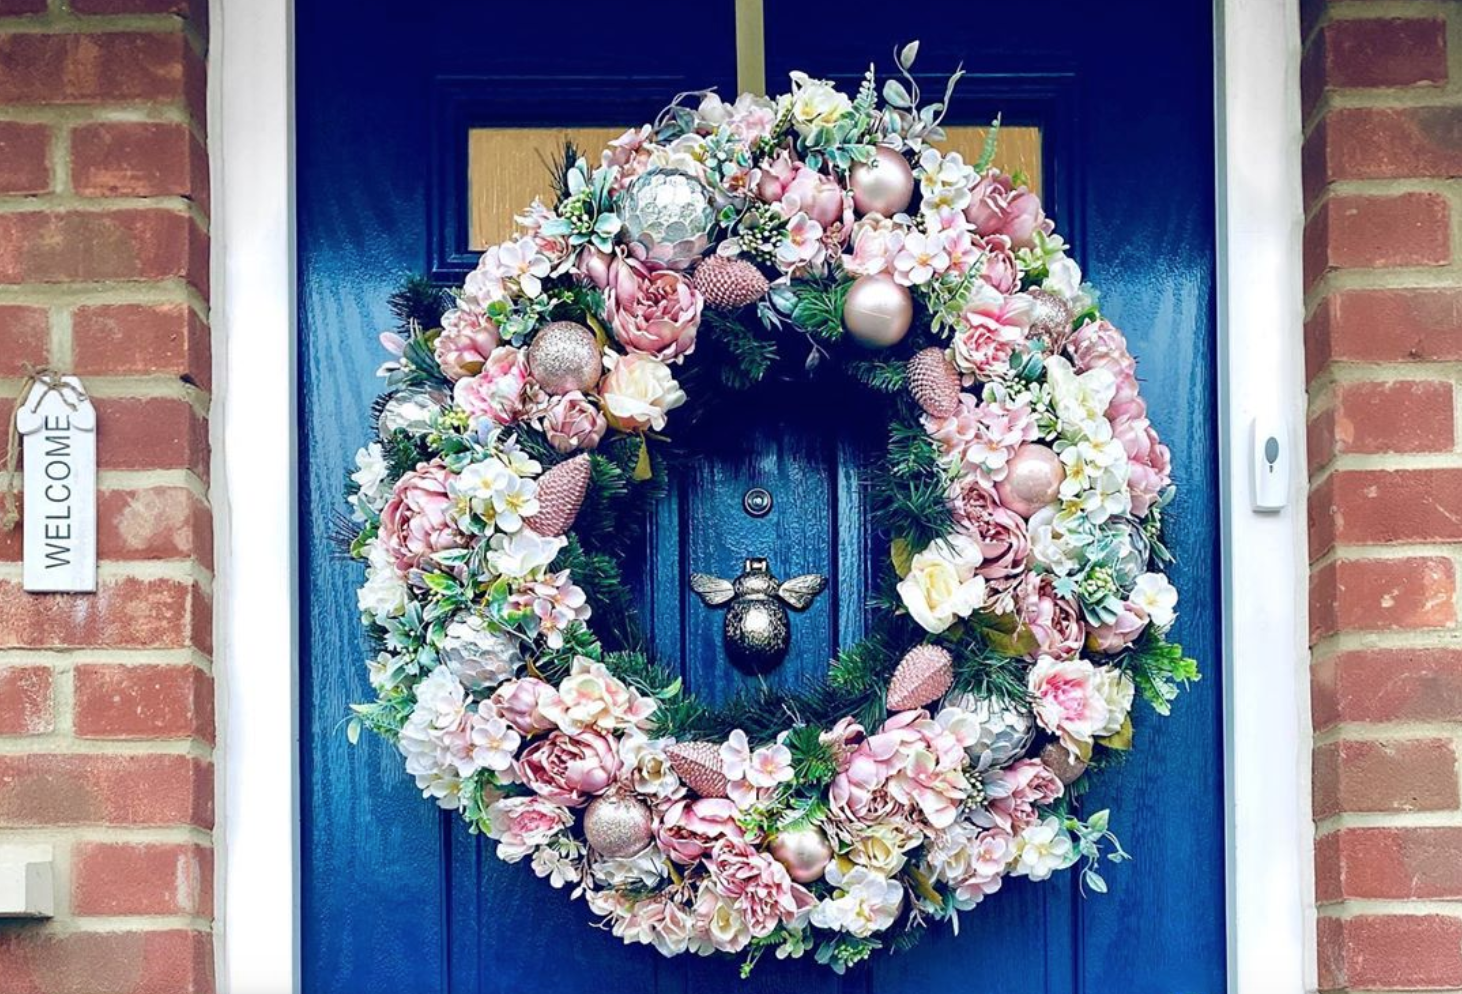 The best celebrity Christmas front doors 2019